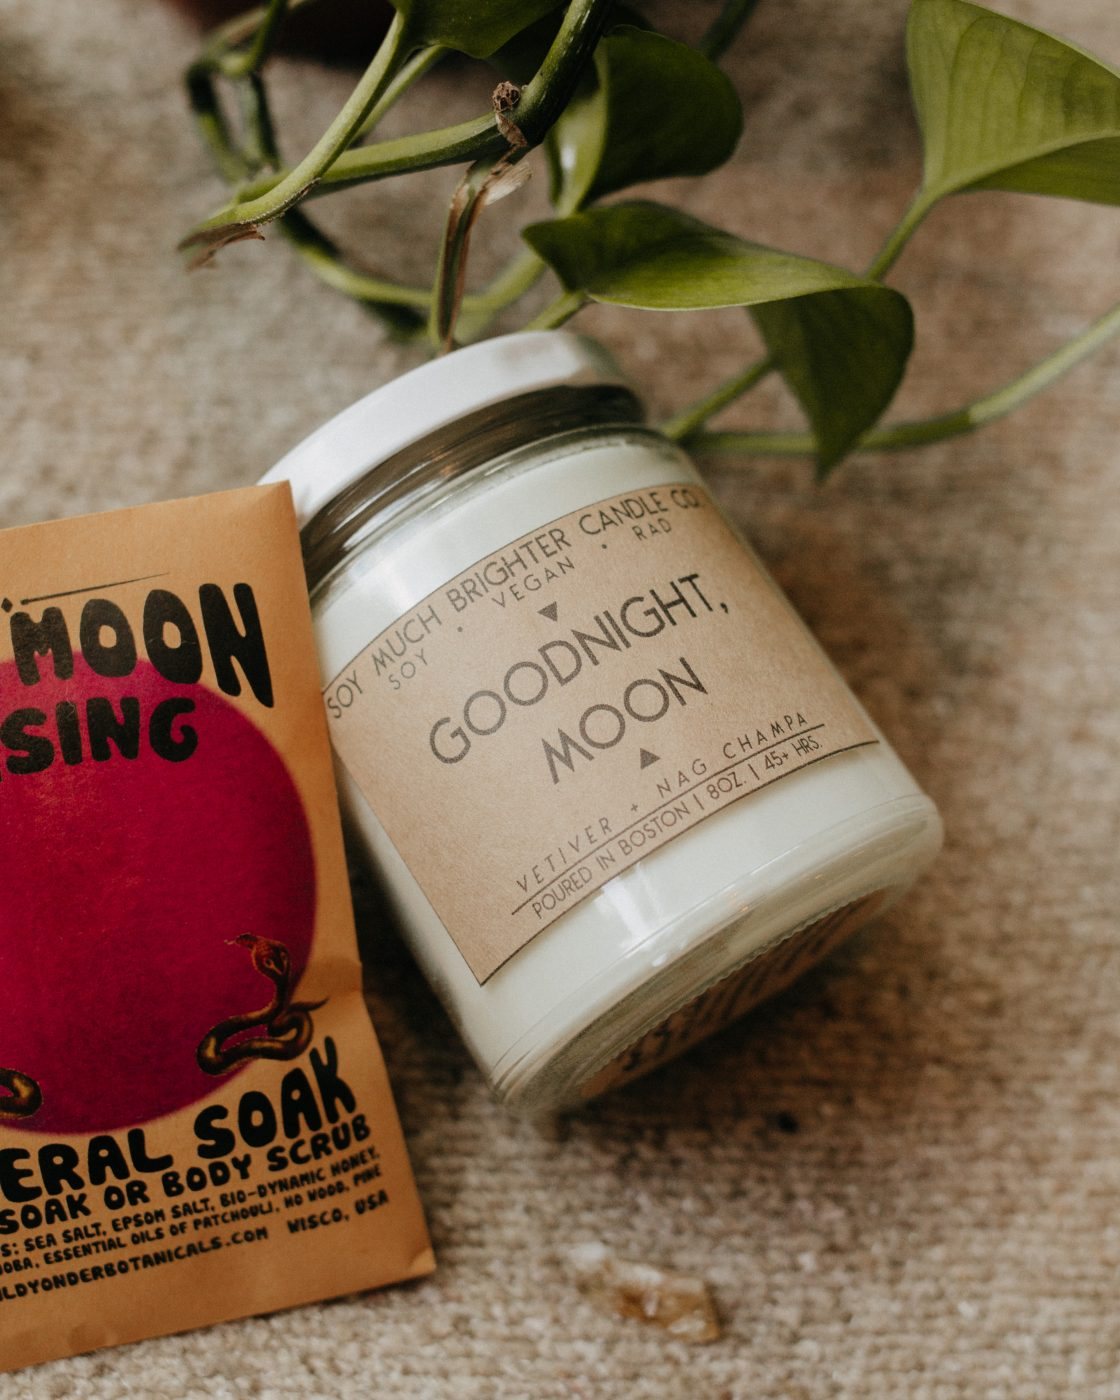 Goodnight Moon Candle by Soy Much Brighter